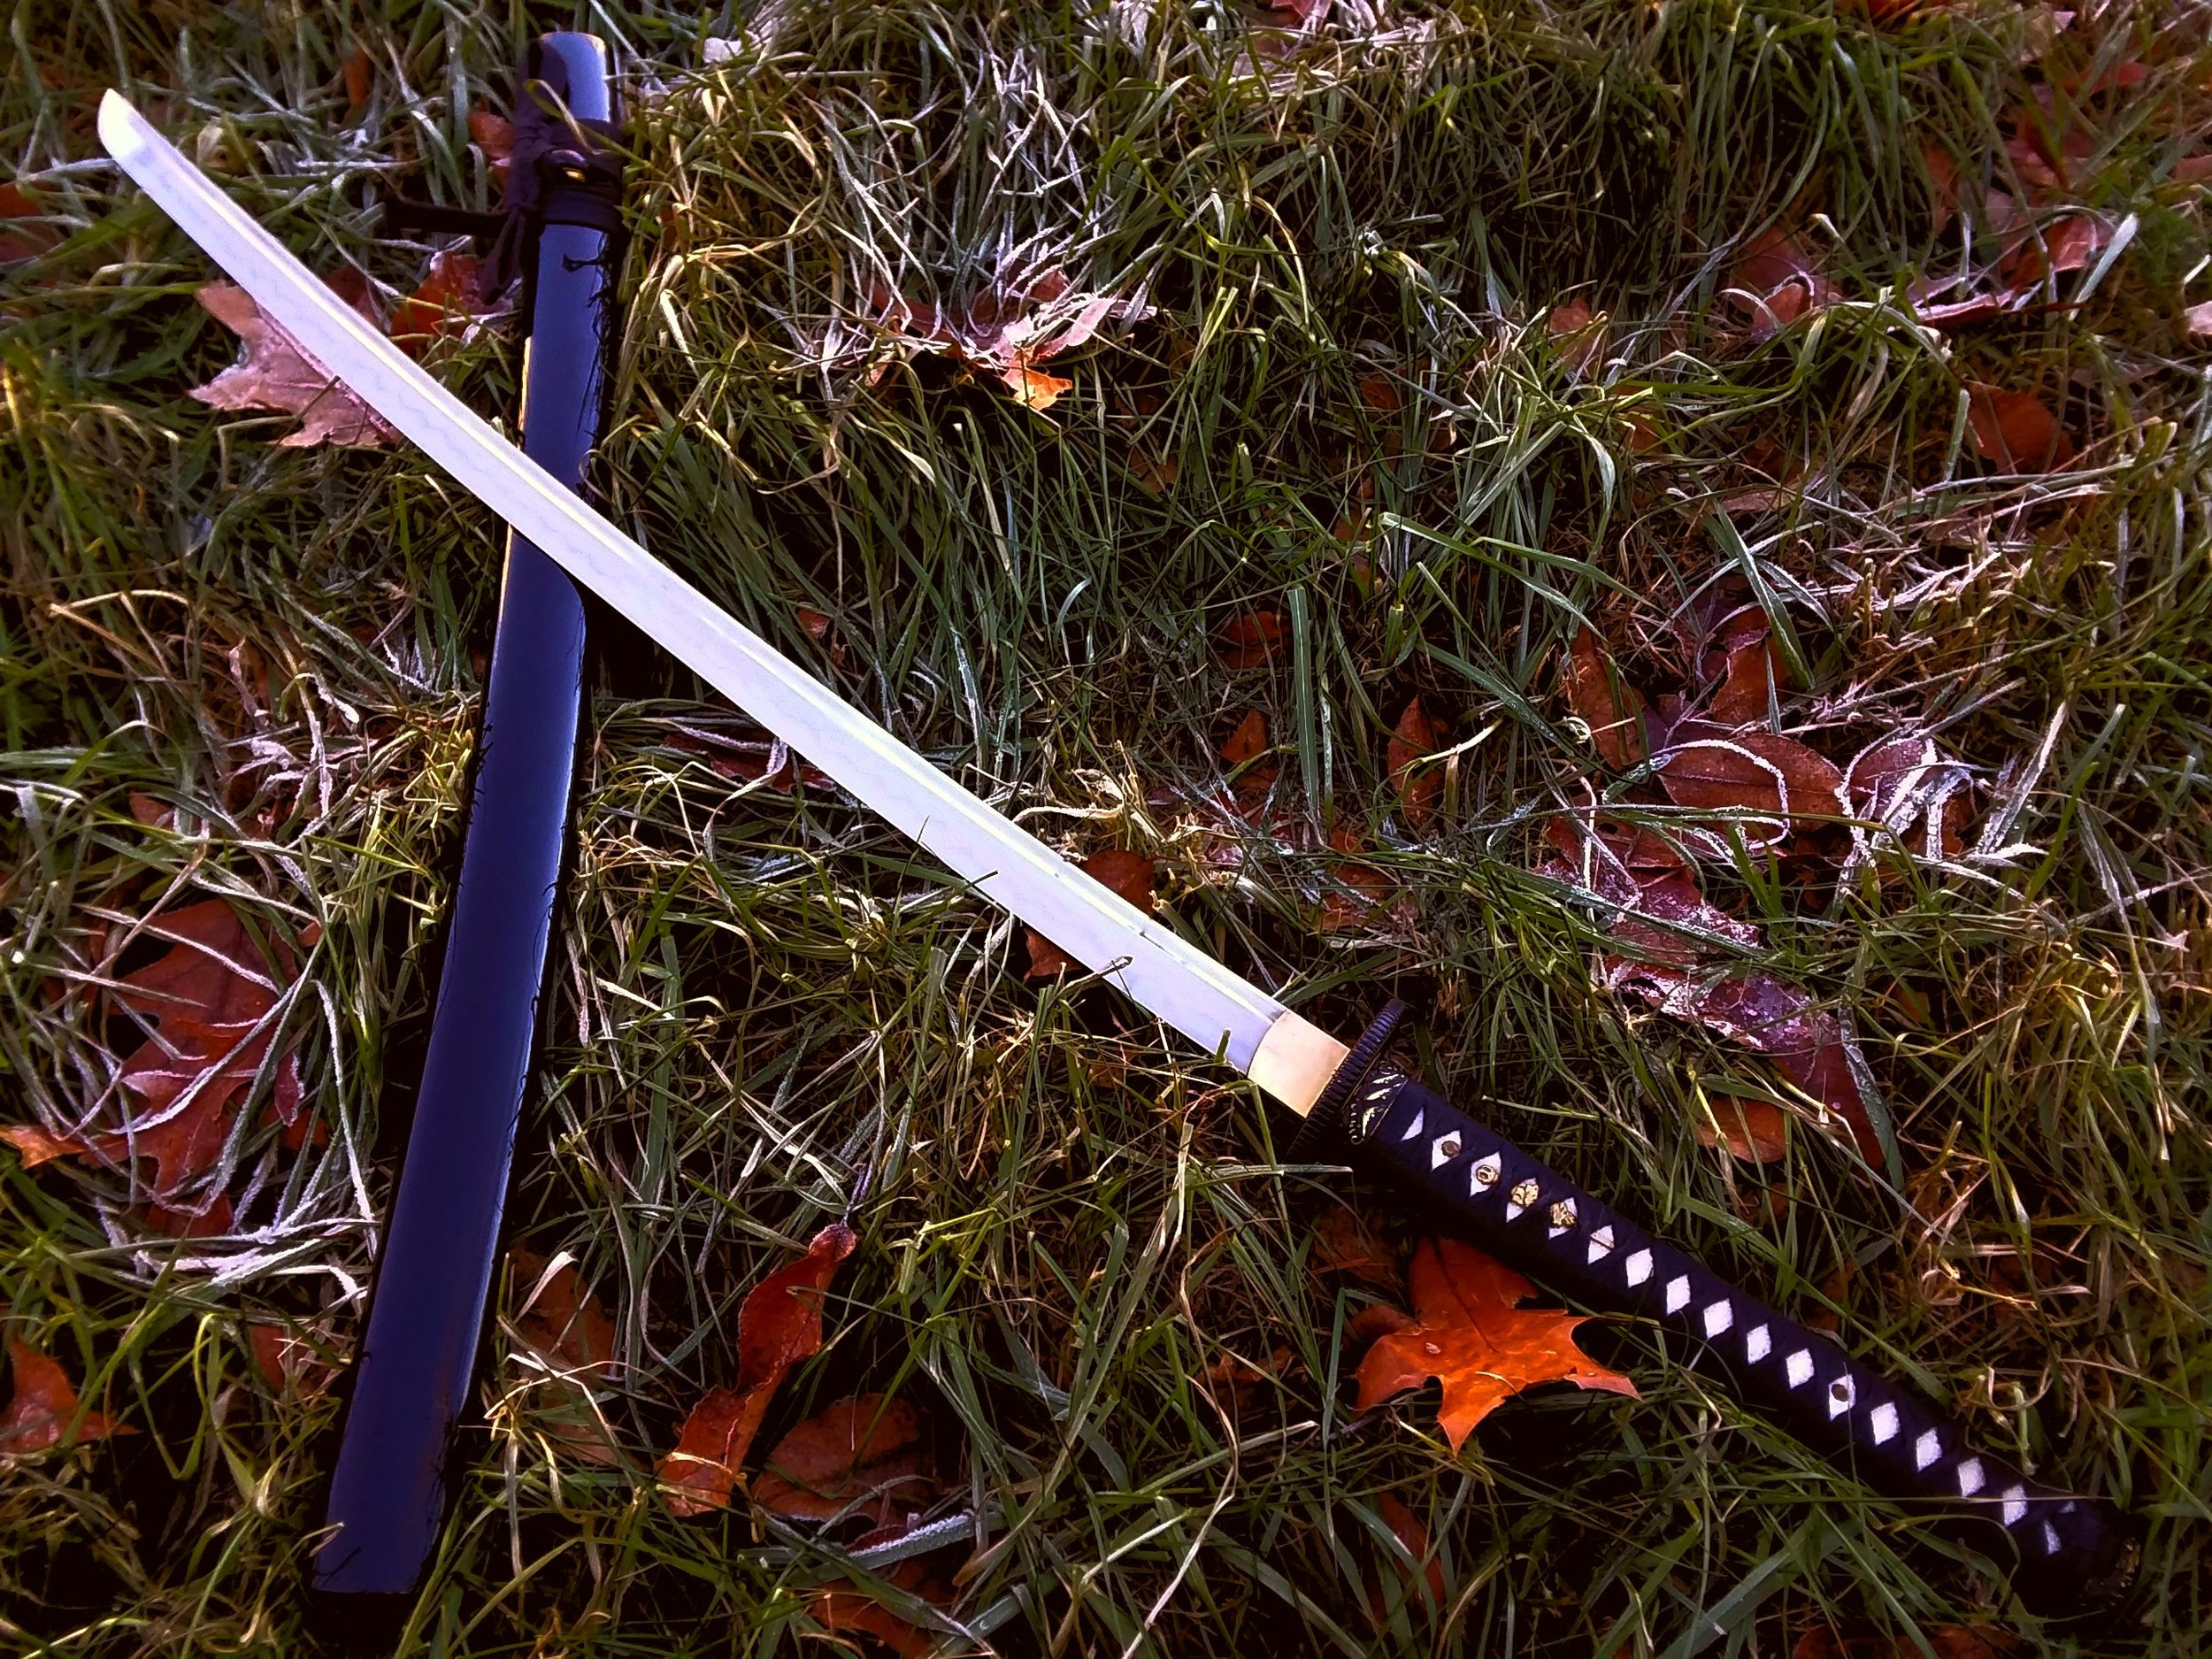 A beautiful and fully functional katana with differentially hardened blade, ray skin handles, tight wrapping, and lacquered saya.